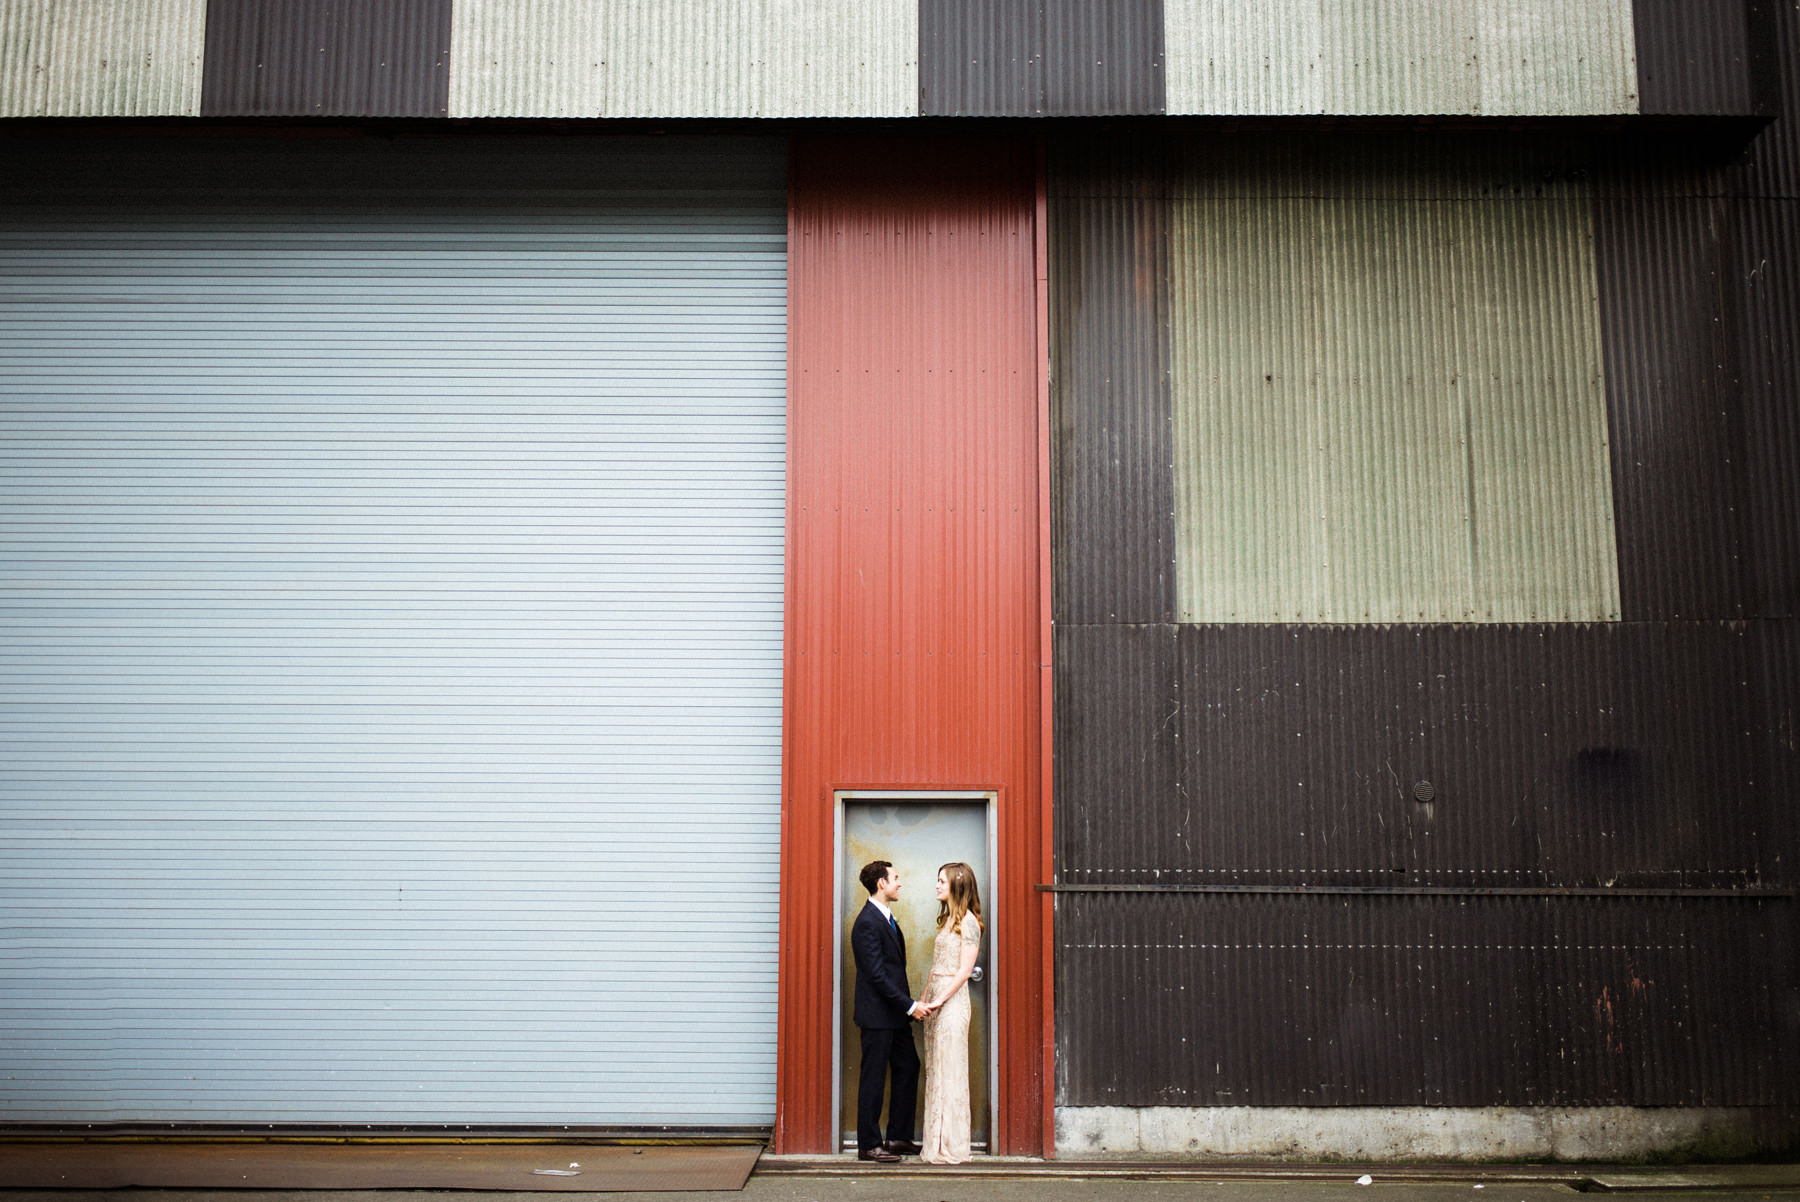 048-urban-wedding-portraits-by-film-photographer-ryan-flynn-in-industrial-area.jpg